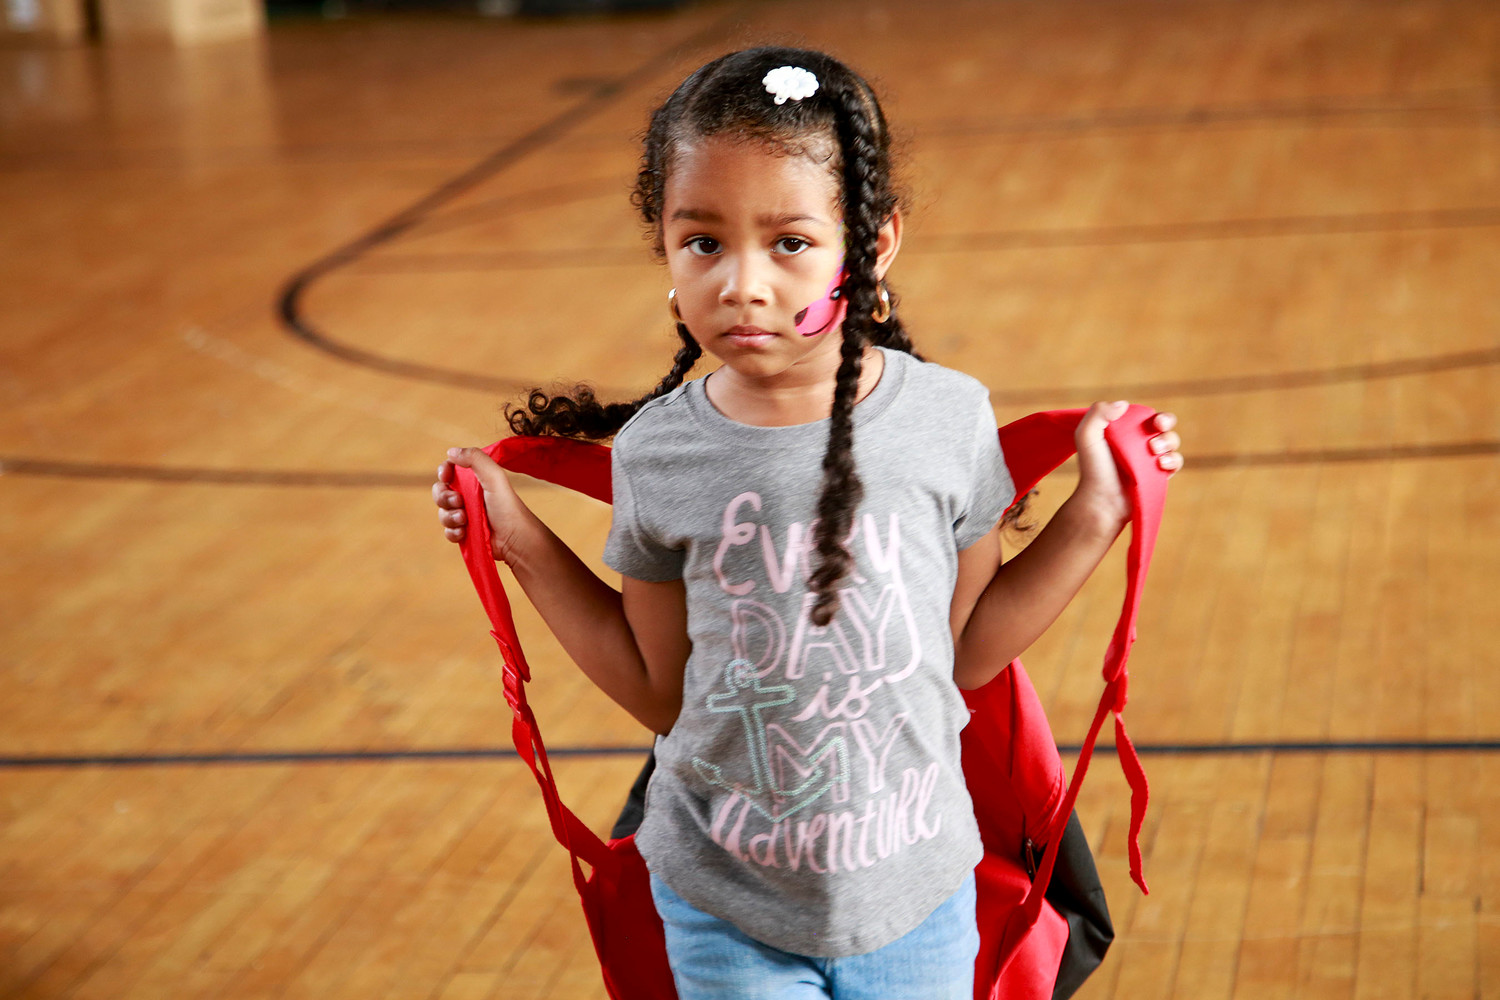 A new backpack is all part of 5-year old Sofia Hernandez's journey.